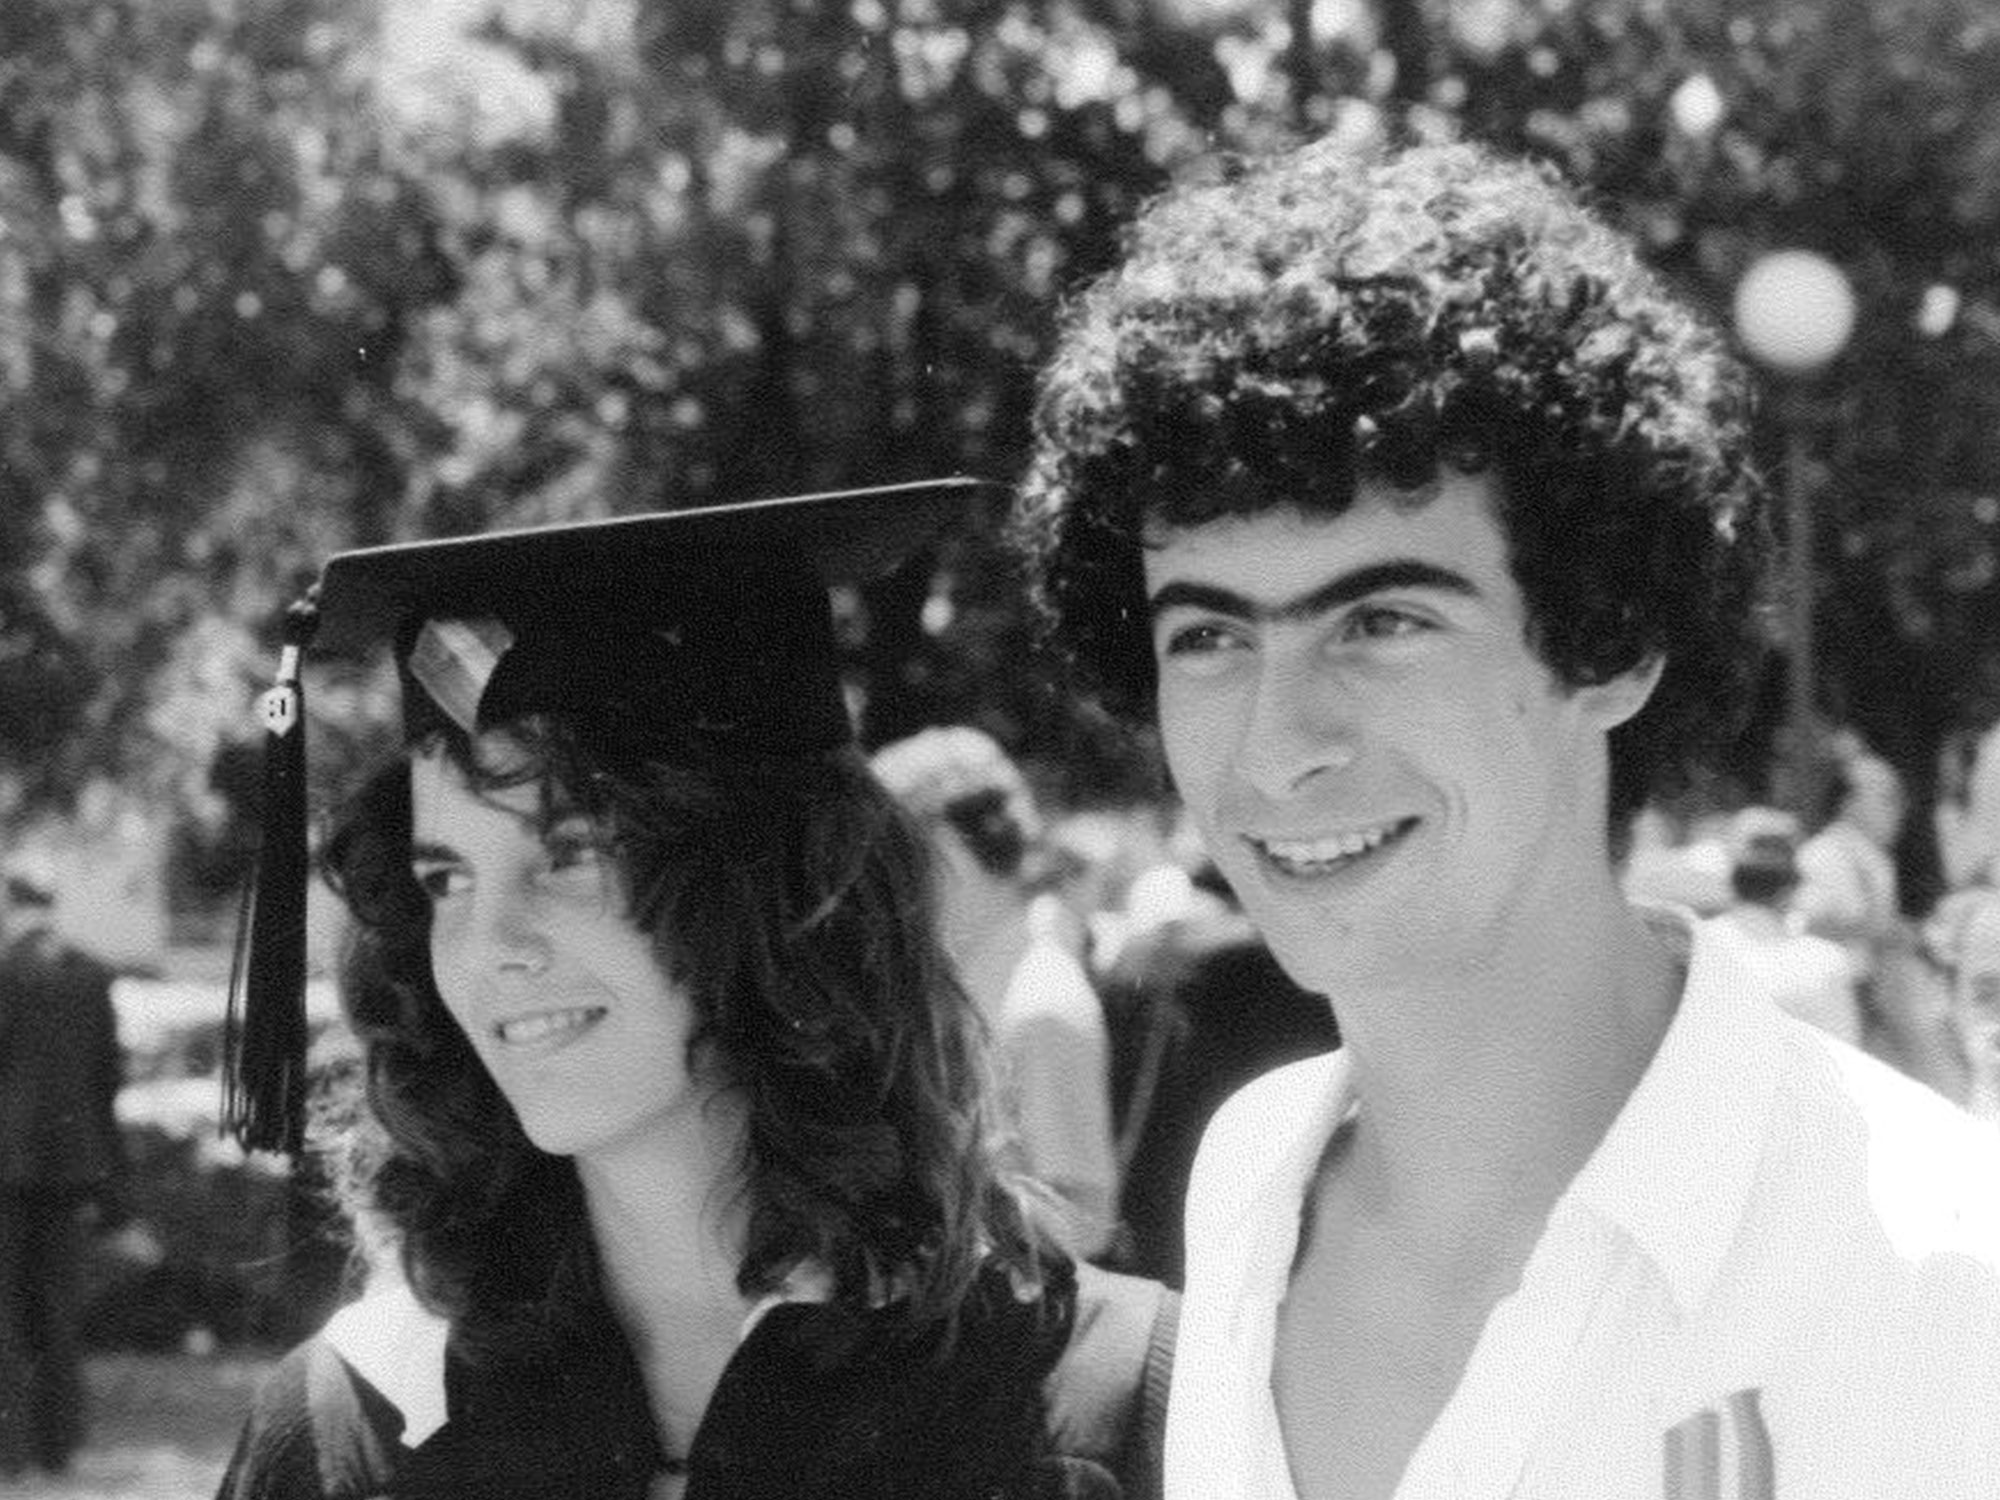 Black-and-white photo of Ann Nelson and David Kaplan standing side by side and smiling, with people and trees in the background. She is wearing a cap and gown; he is not.